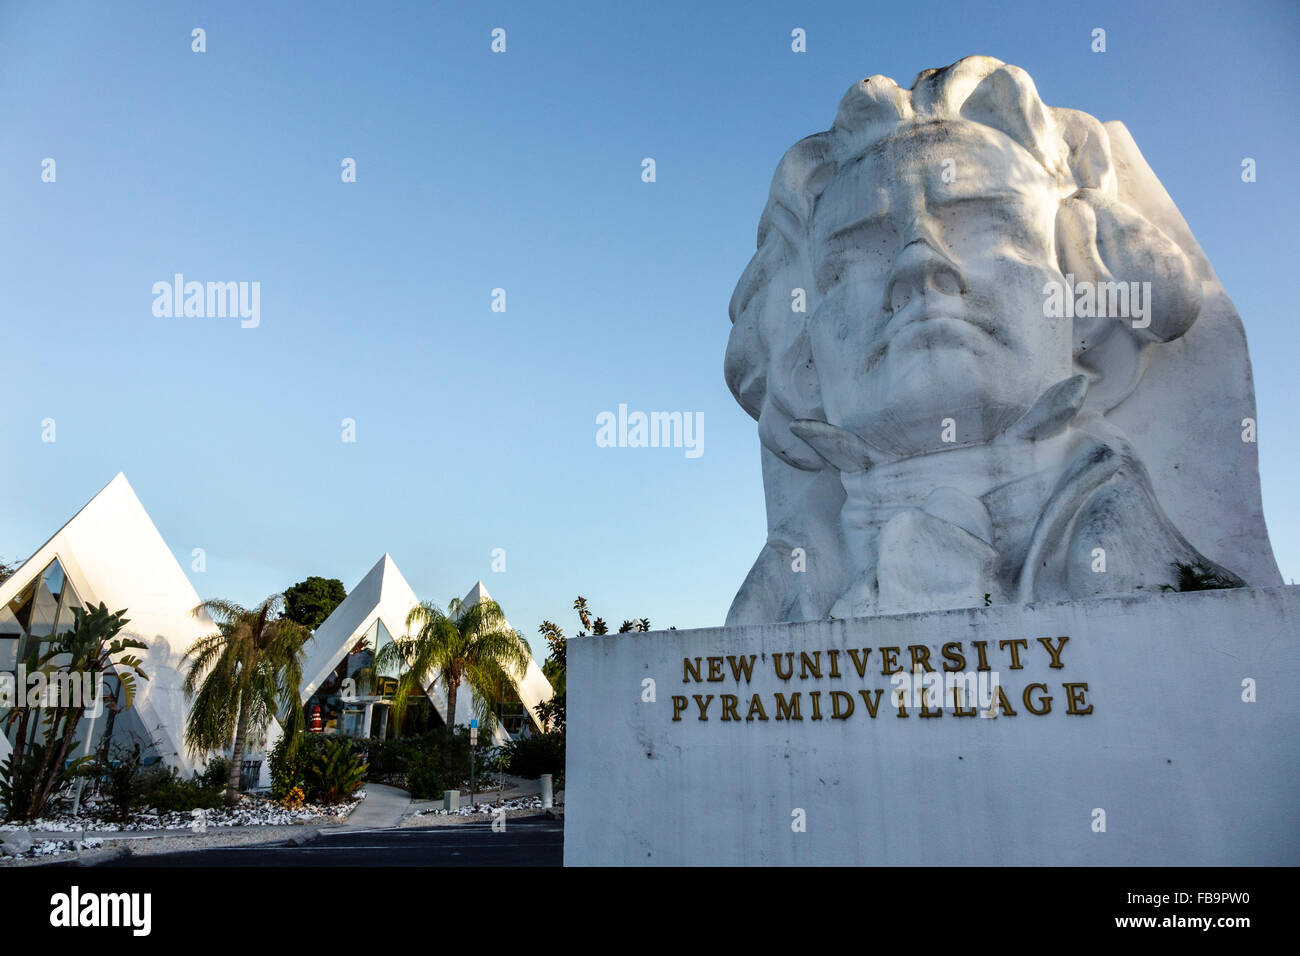 Fort Myers Florida Ft. Pyramids New University Pyramid Village Resort hotel giant Ludwig Beethoven head sculpture - Stock Image